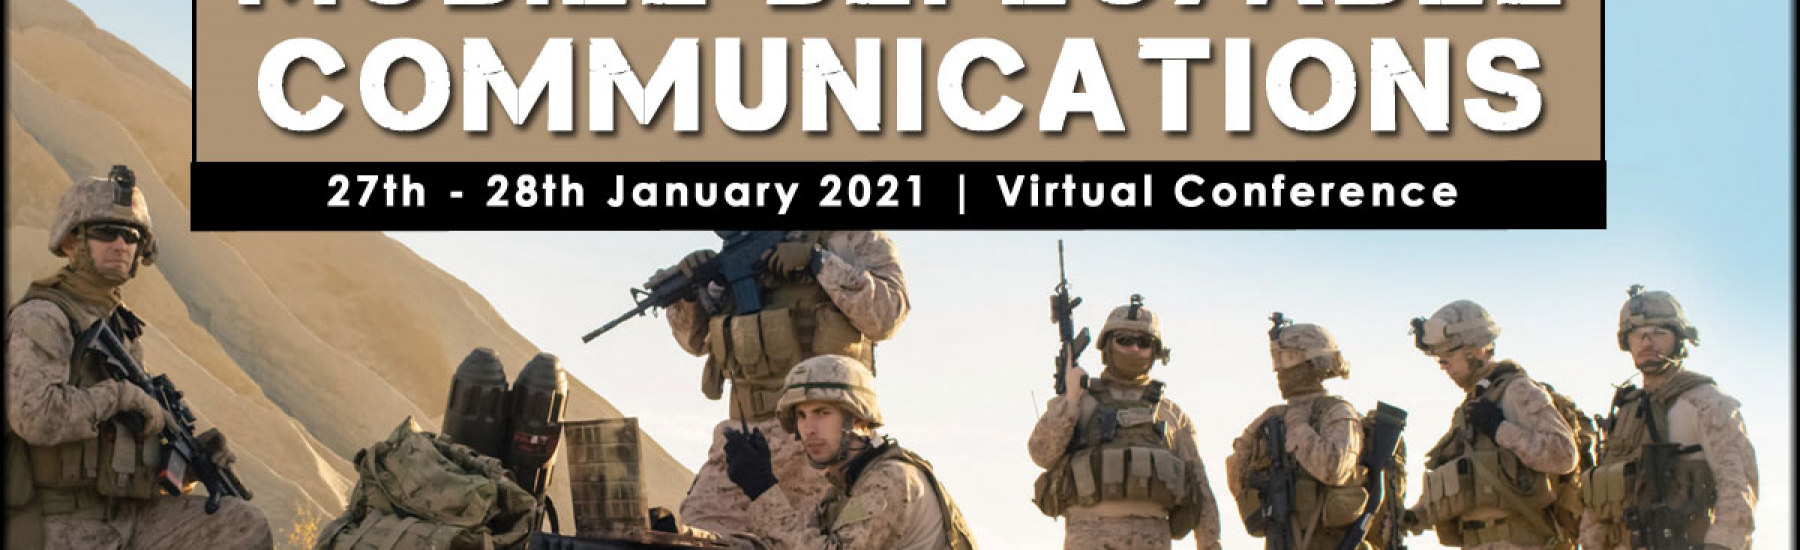 Mobile Deployable Communications 2021 (Virtual Conference)